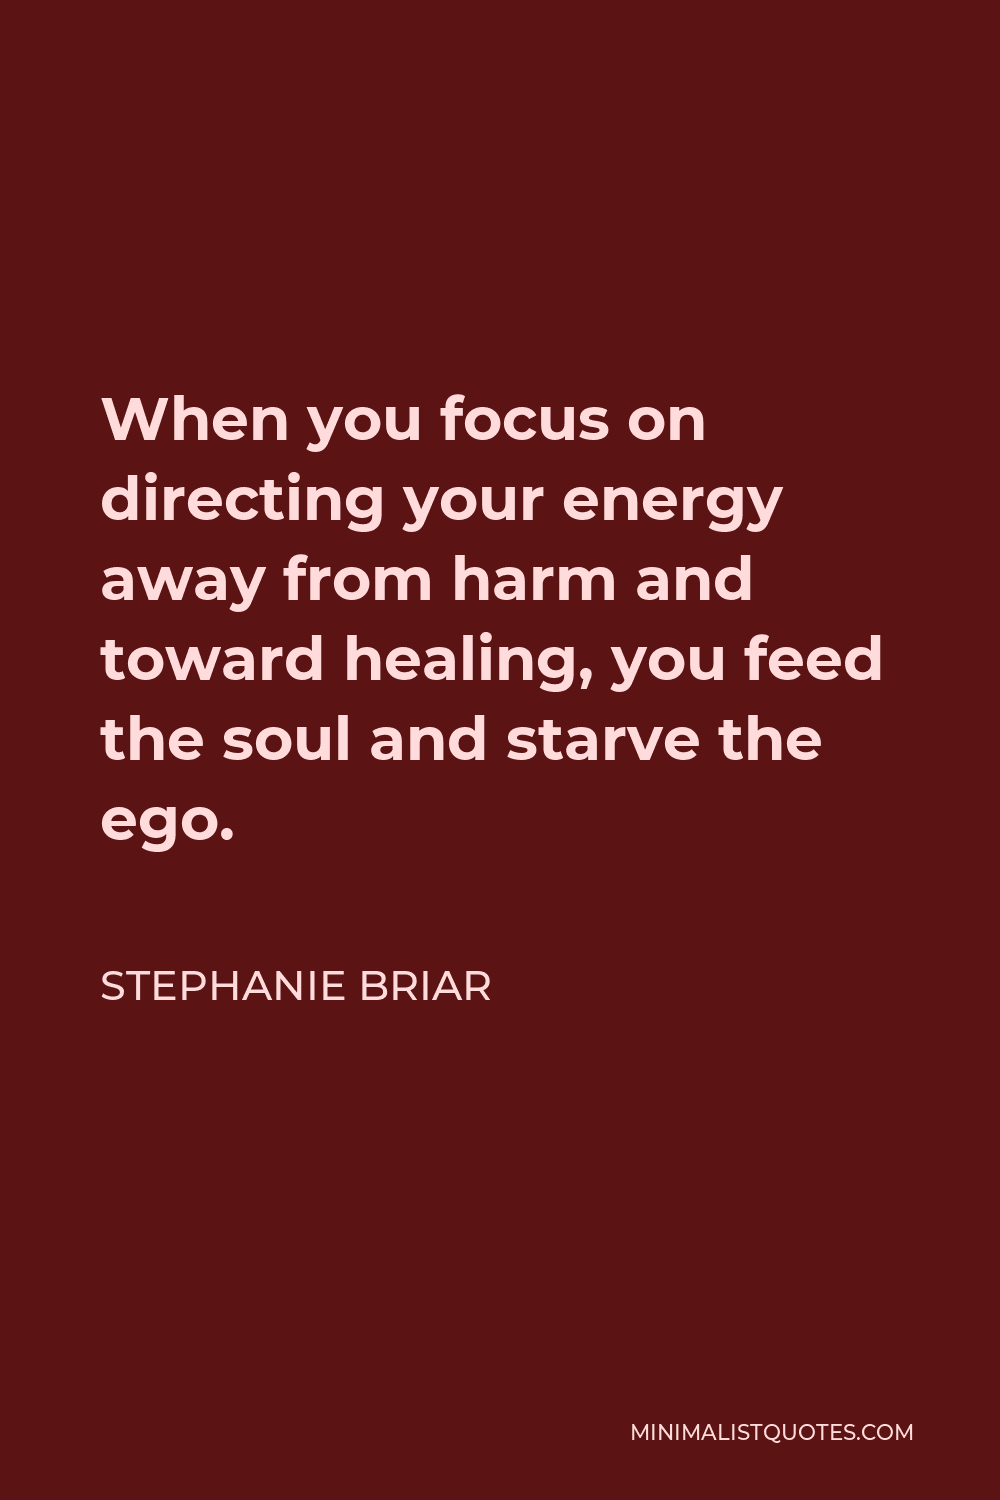 Stephanie Briar Quote - When you focus on directing your energy away from harm and toward healing, you feed the soul and starve the ego.